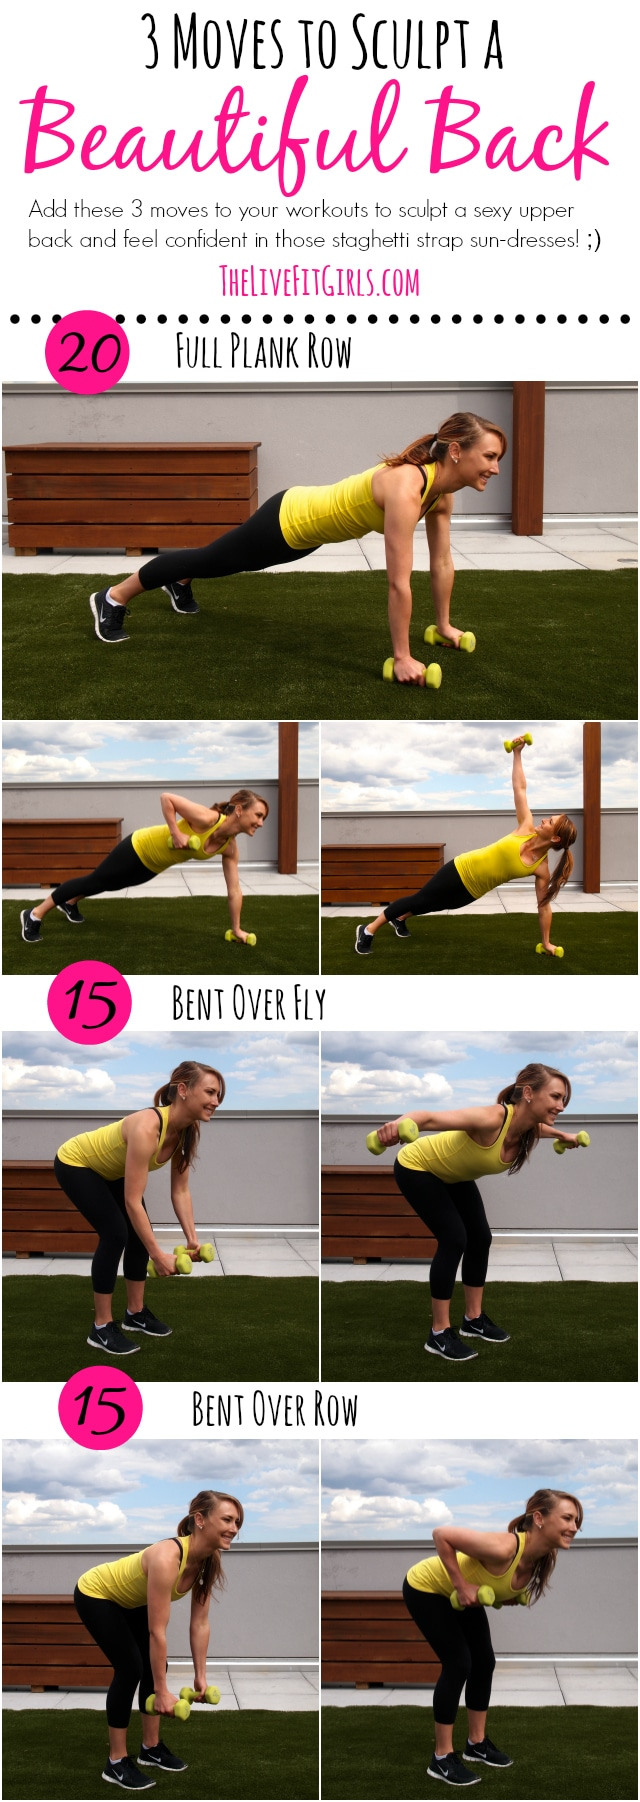 3 Moves to Sculpt a Beautiful Back